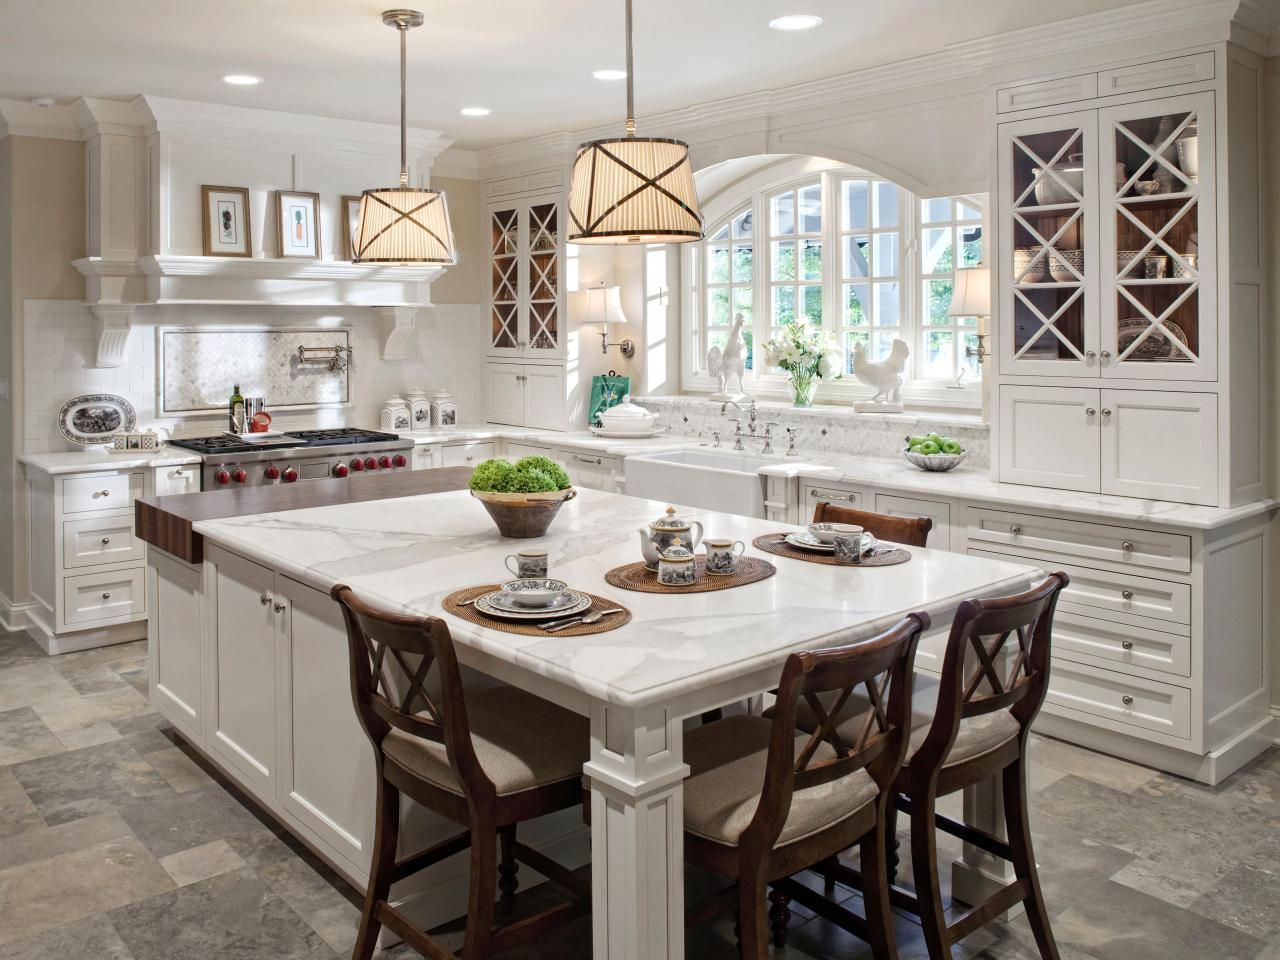 These Stylish Kitchen Island Designs Will Have You Swooning - How to decorate a kitchen island